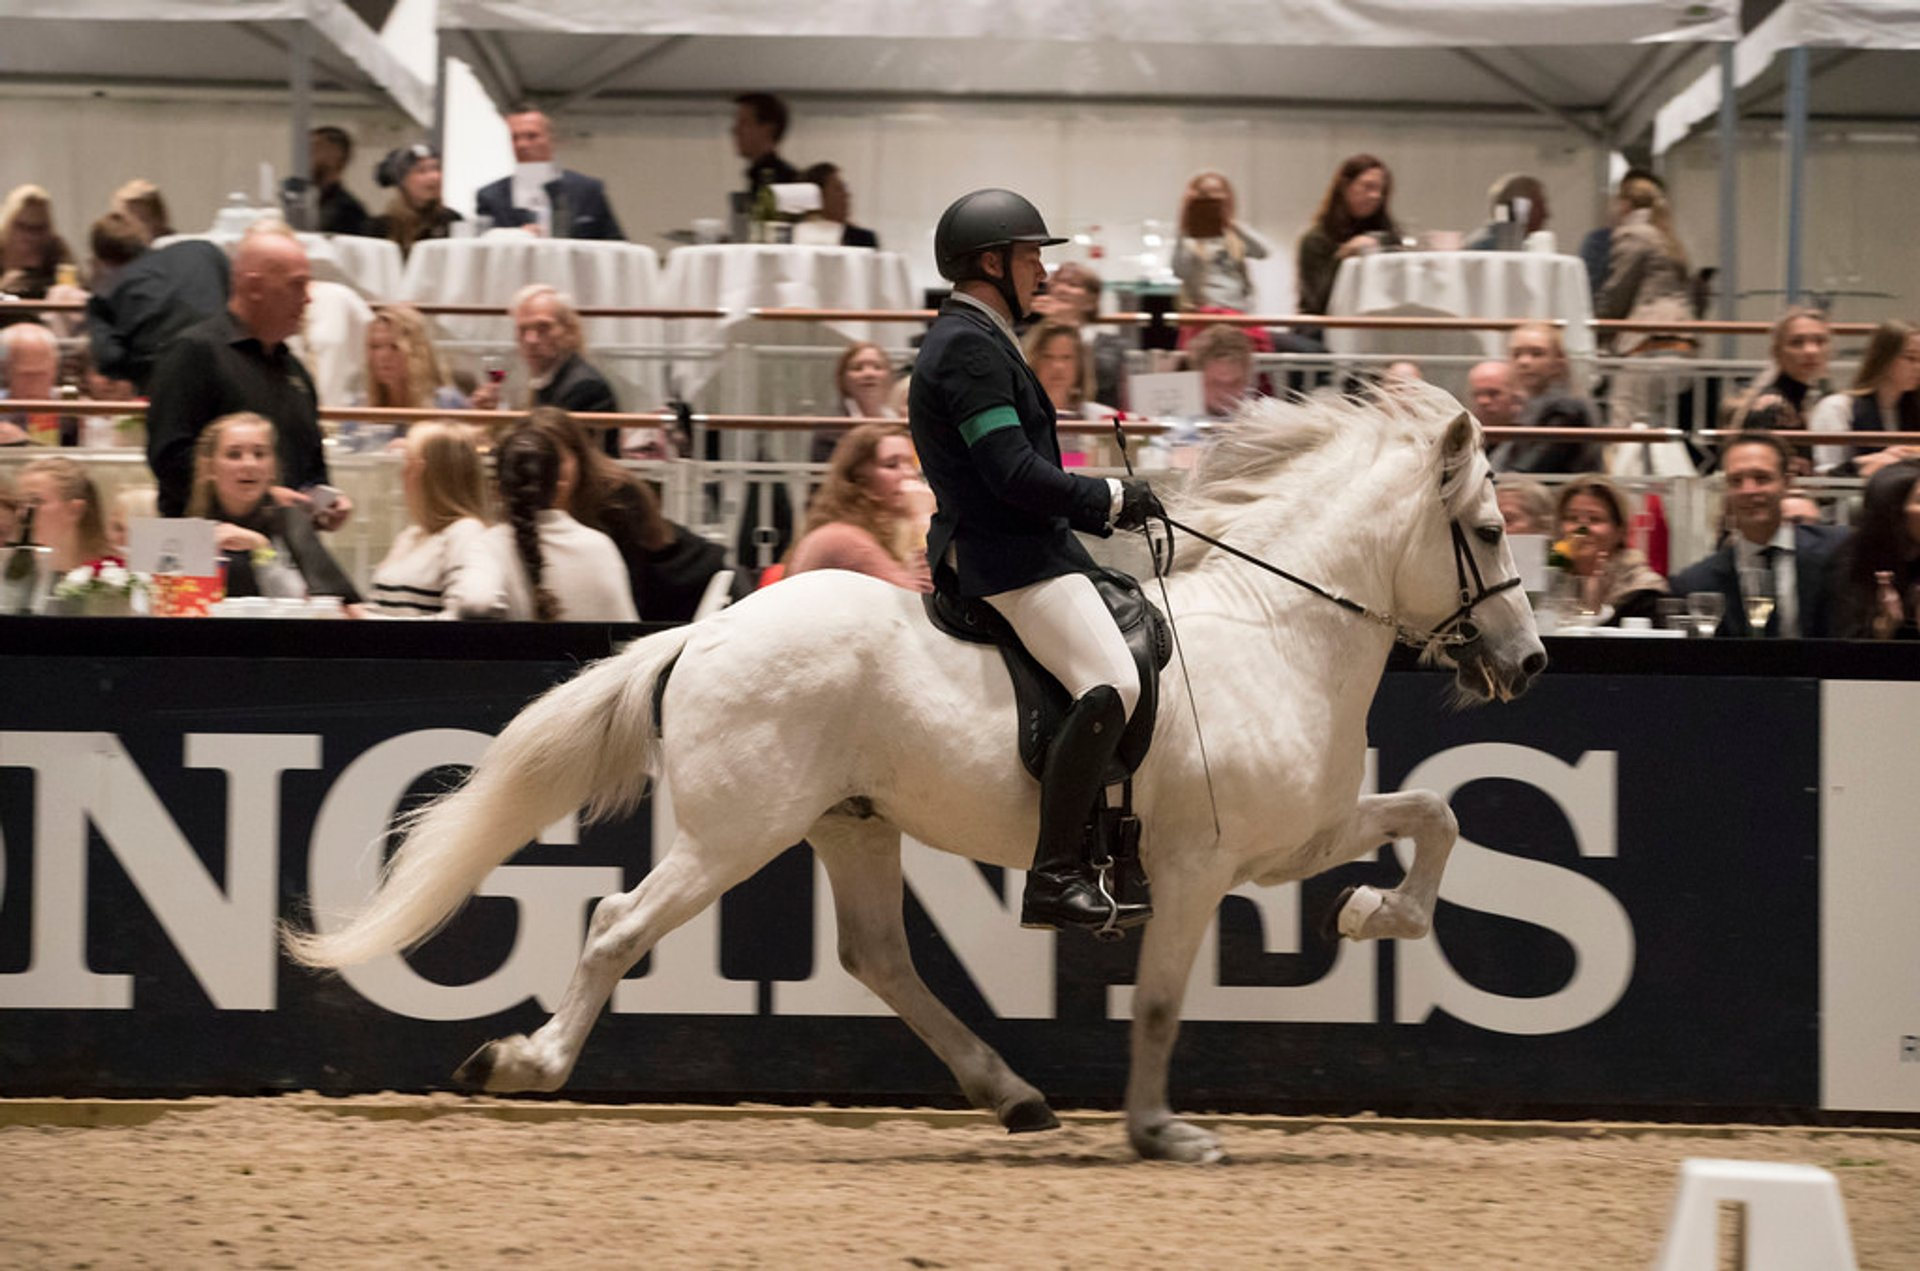 Kingsland Oslo Horse Show in Oslo - Best Season